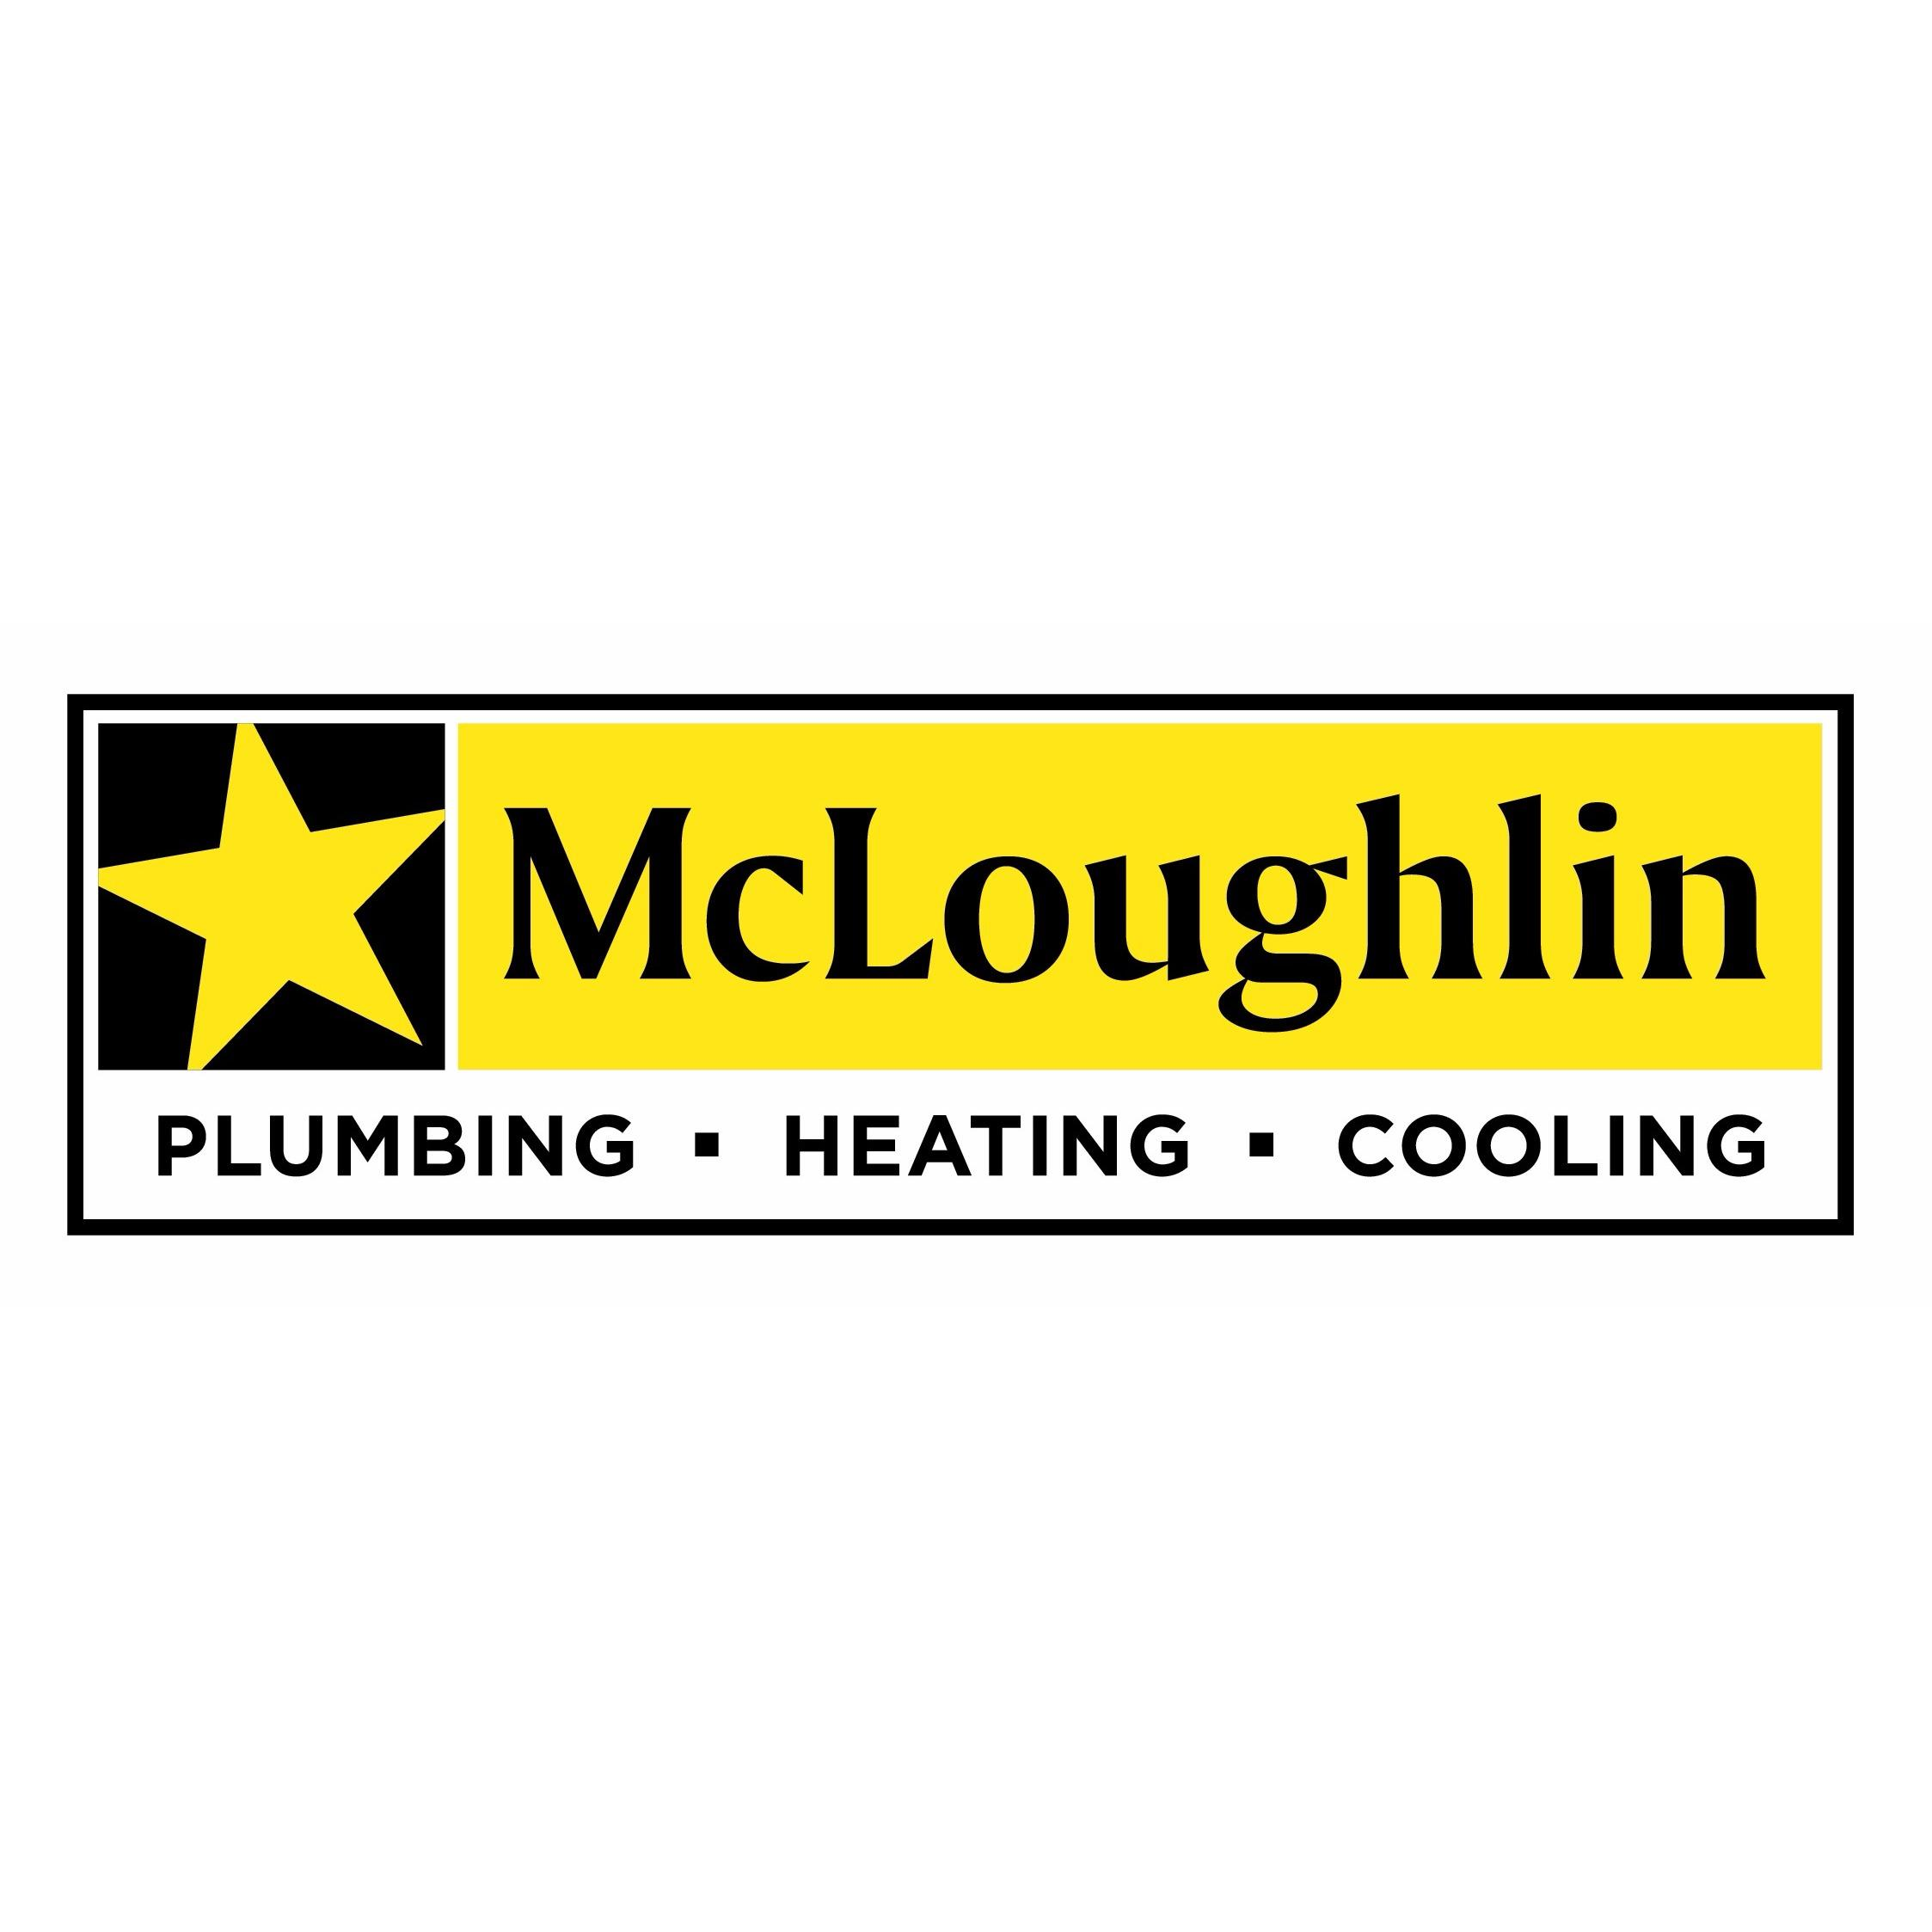 McLoughlin Plumbing Heating & Cooling